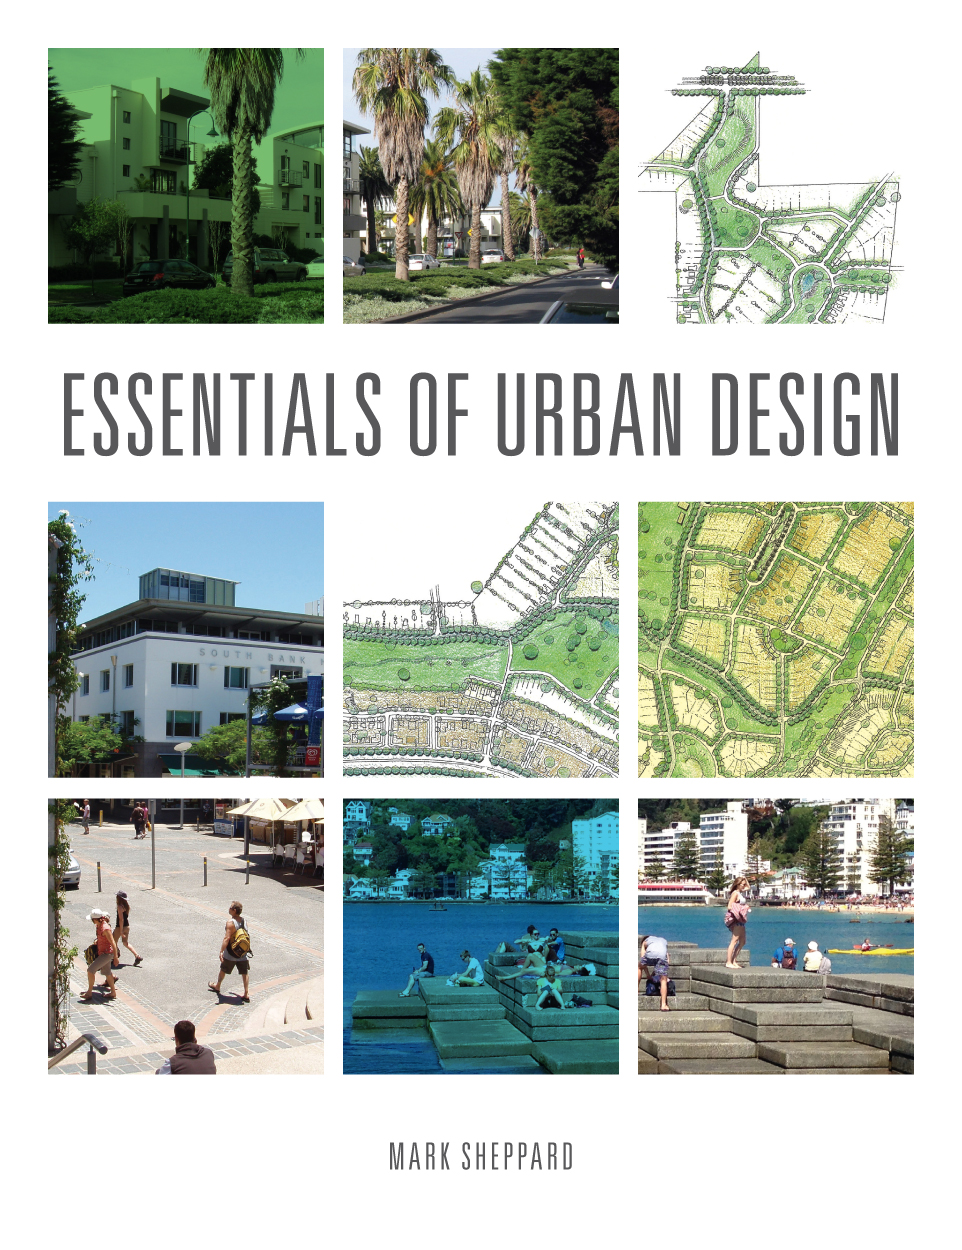 The cover features urban maps and photos of urban environments on a white